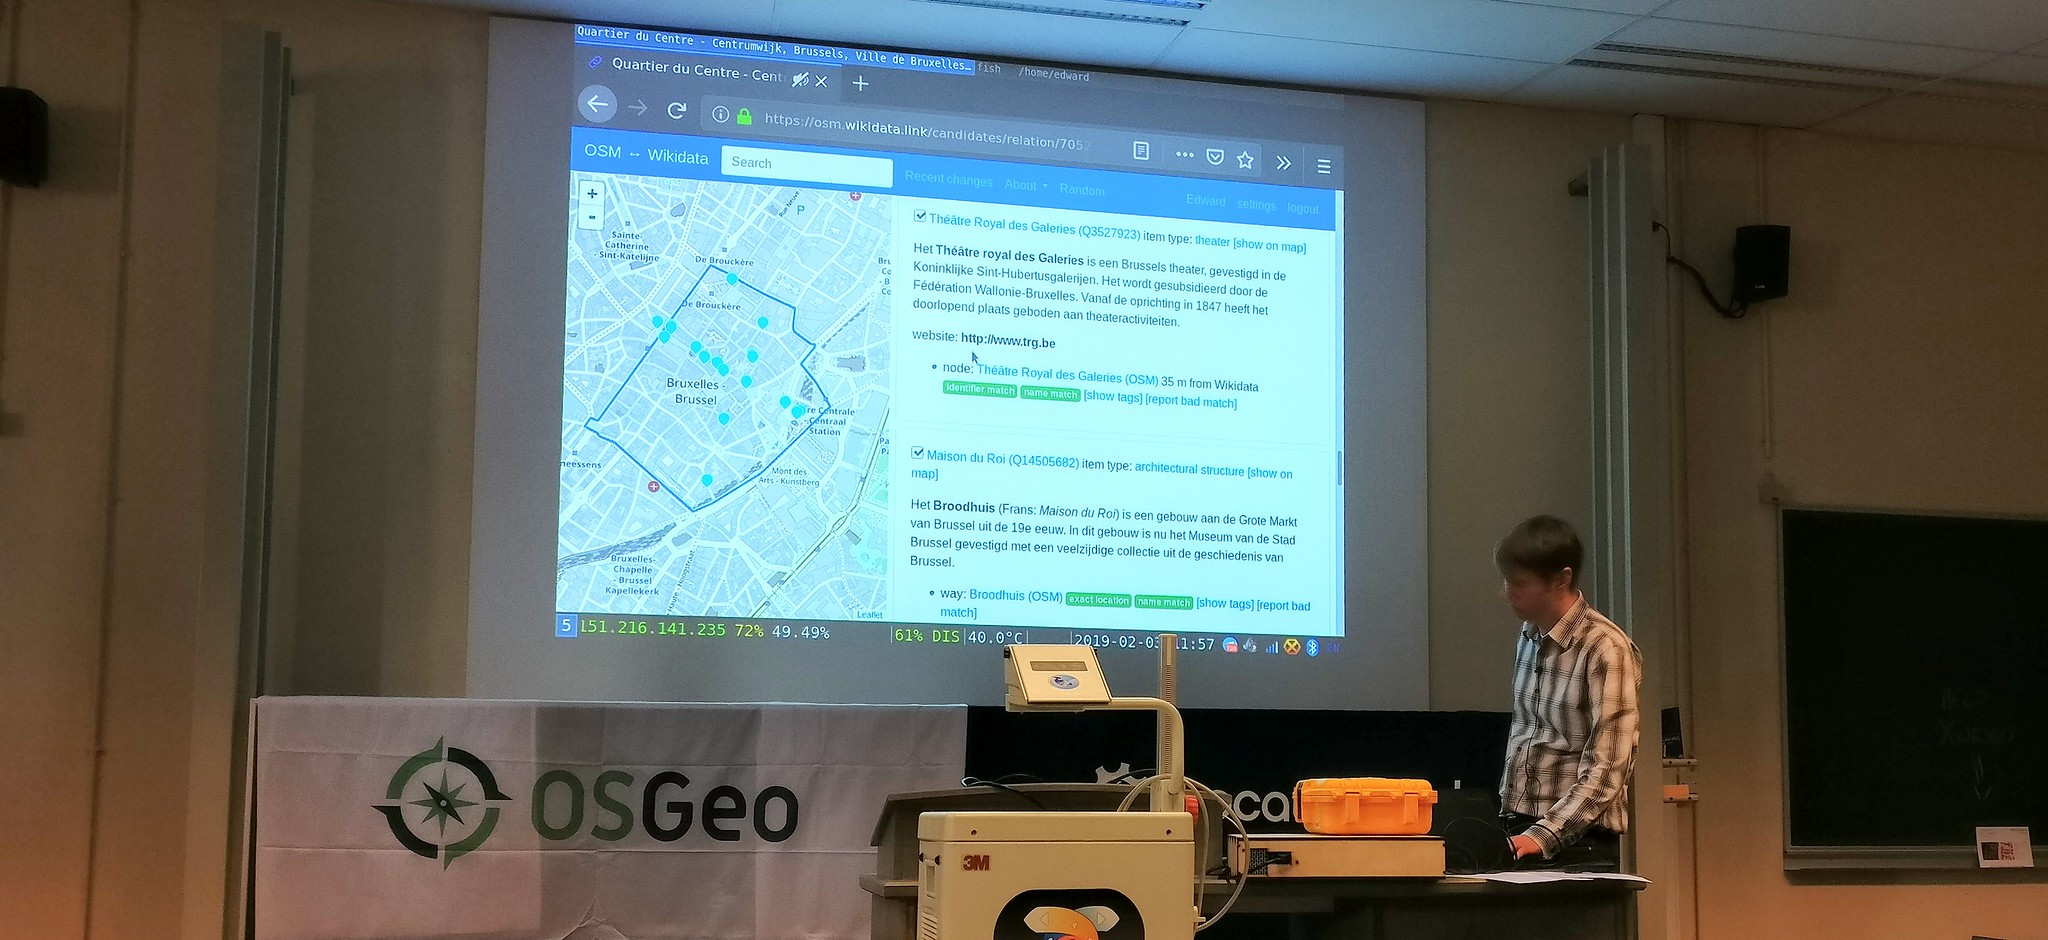 Edward Betts in FOSDEM 2019 presenting his tool to link OpenStreetMap and Wikidata